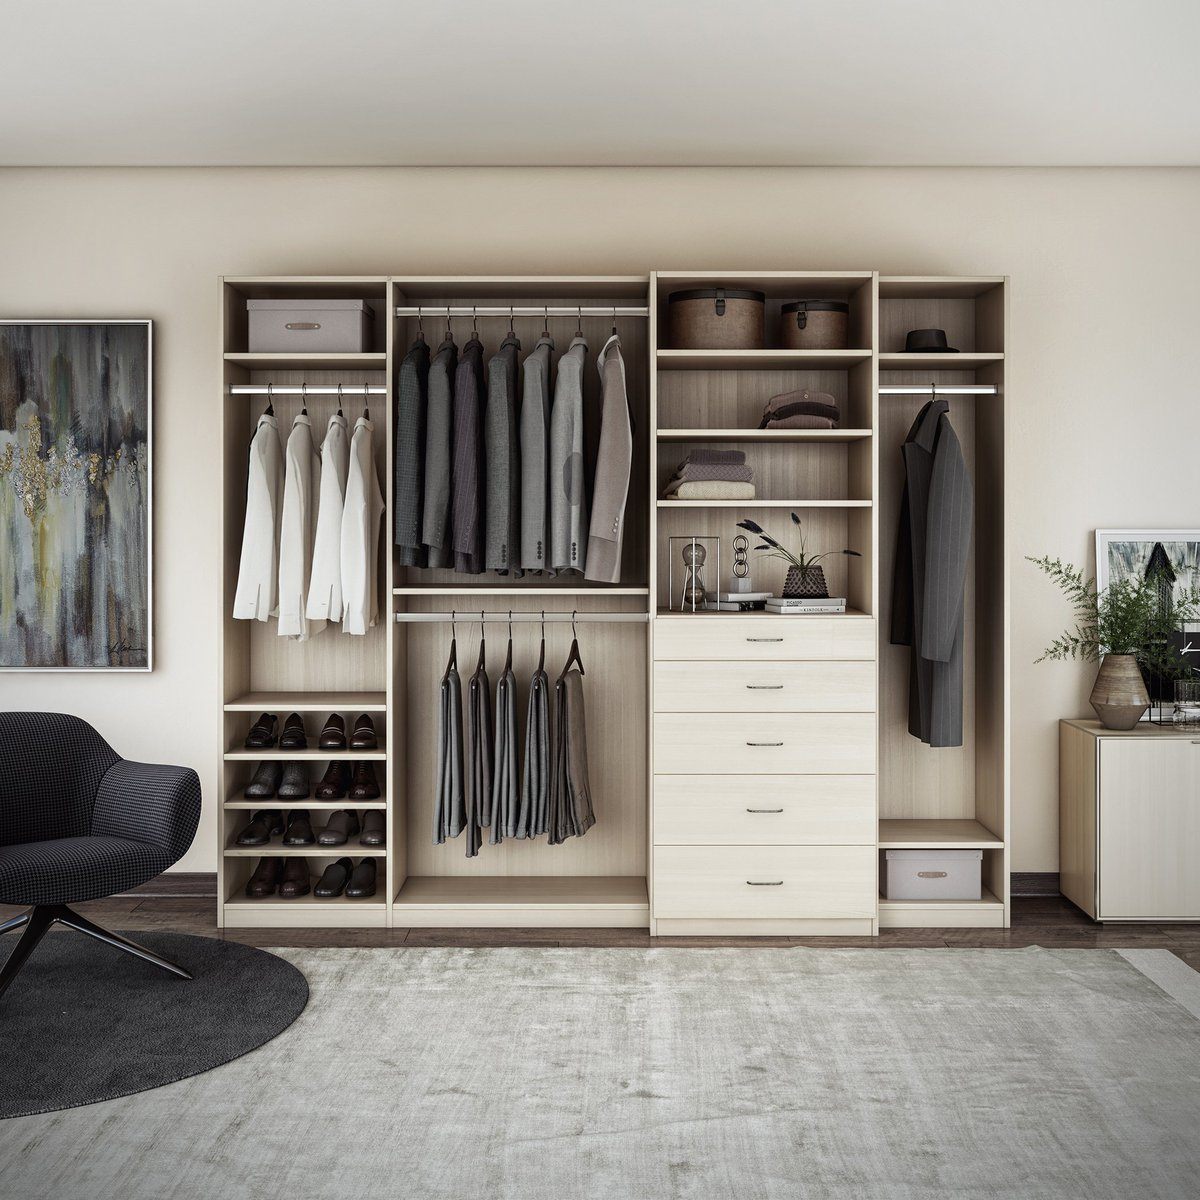 Exceptionnel ... Vertical Shelving Can Make Your Small Space Seem Bigger And Taller!  #spacesaving Https://www.closetsbydesign.com/bedroom Pic.twitter.com /B4Hs8ltopa